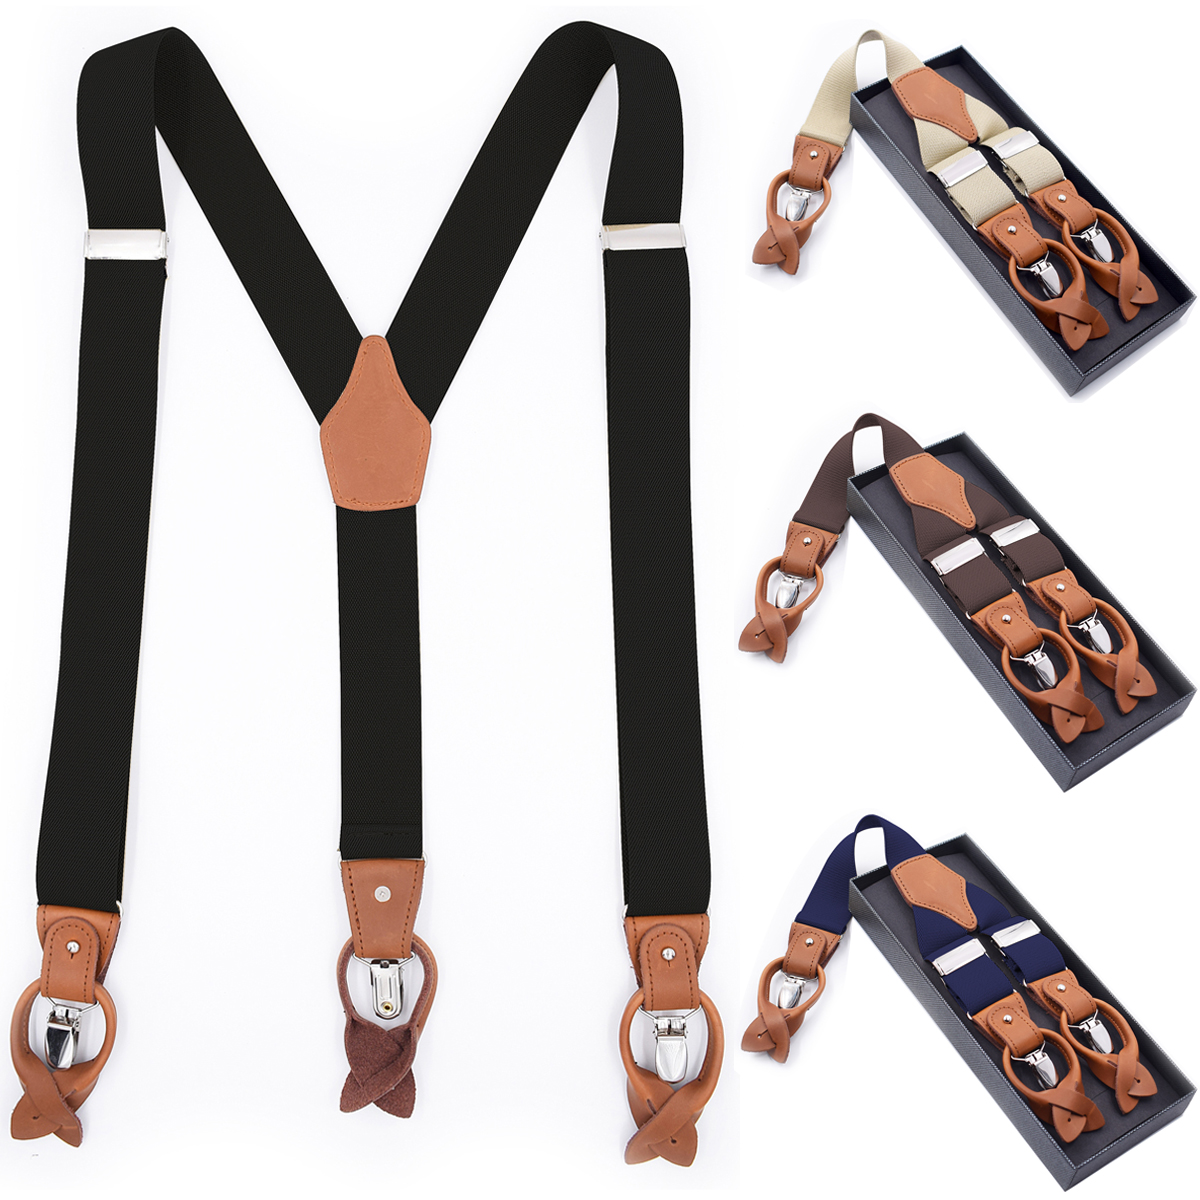 Mens Suspenders Braces Leather Straps Button Ends Heavy Duty Clips Adjustable Elastic Tuxedo Suspenders for Men Black Blue Brown image